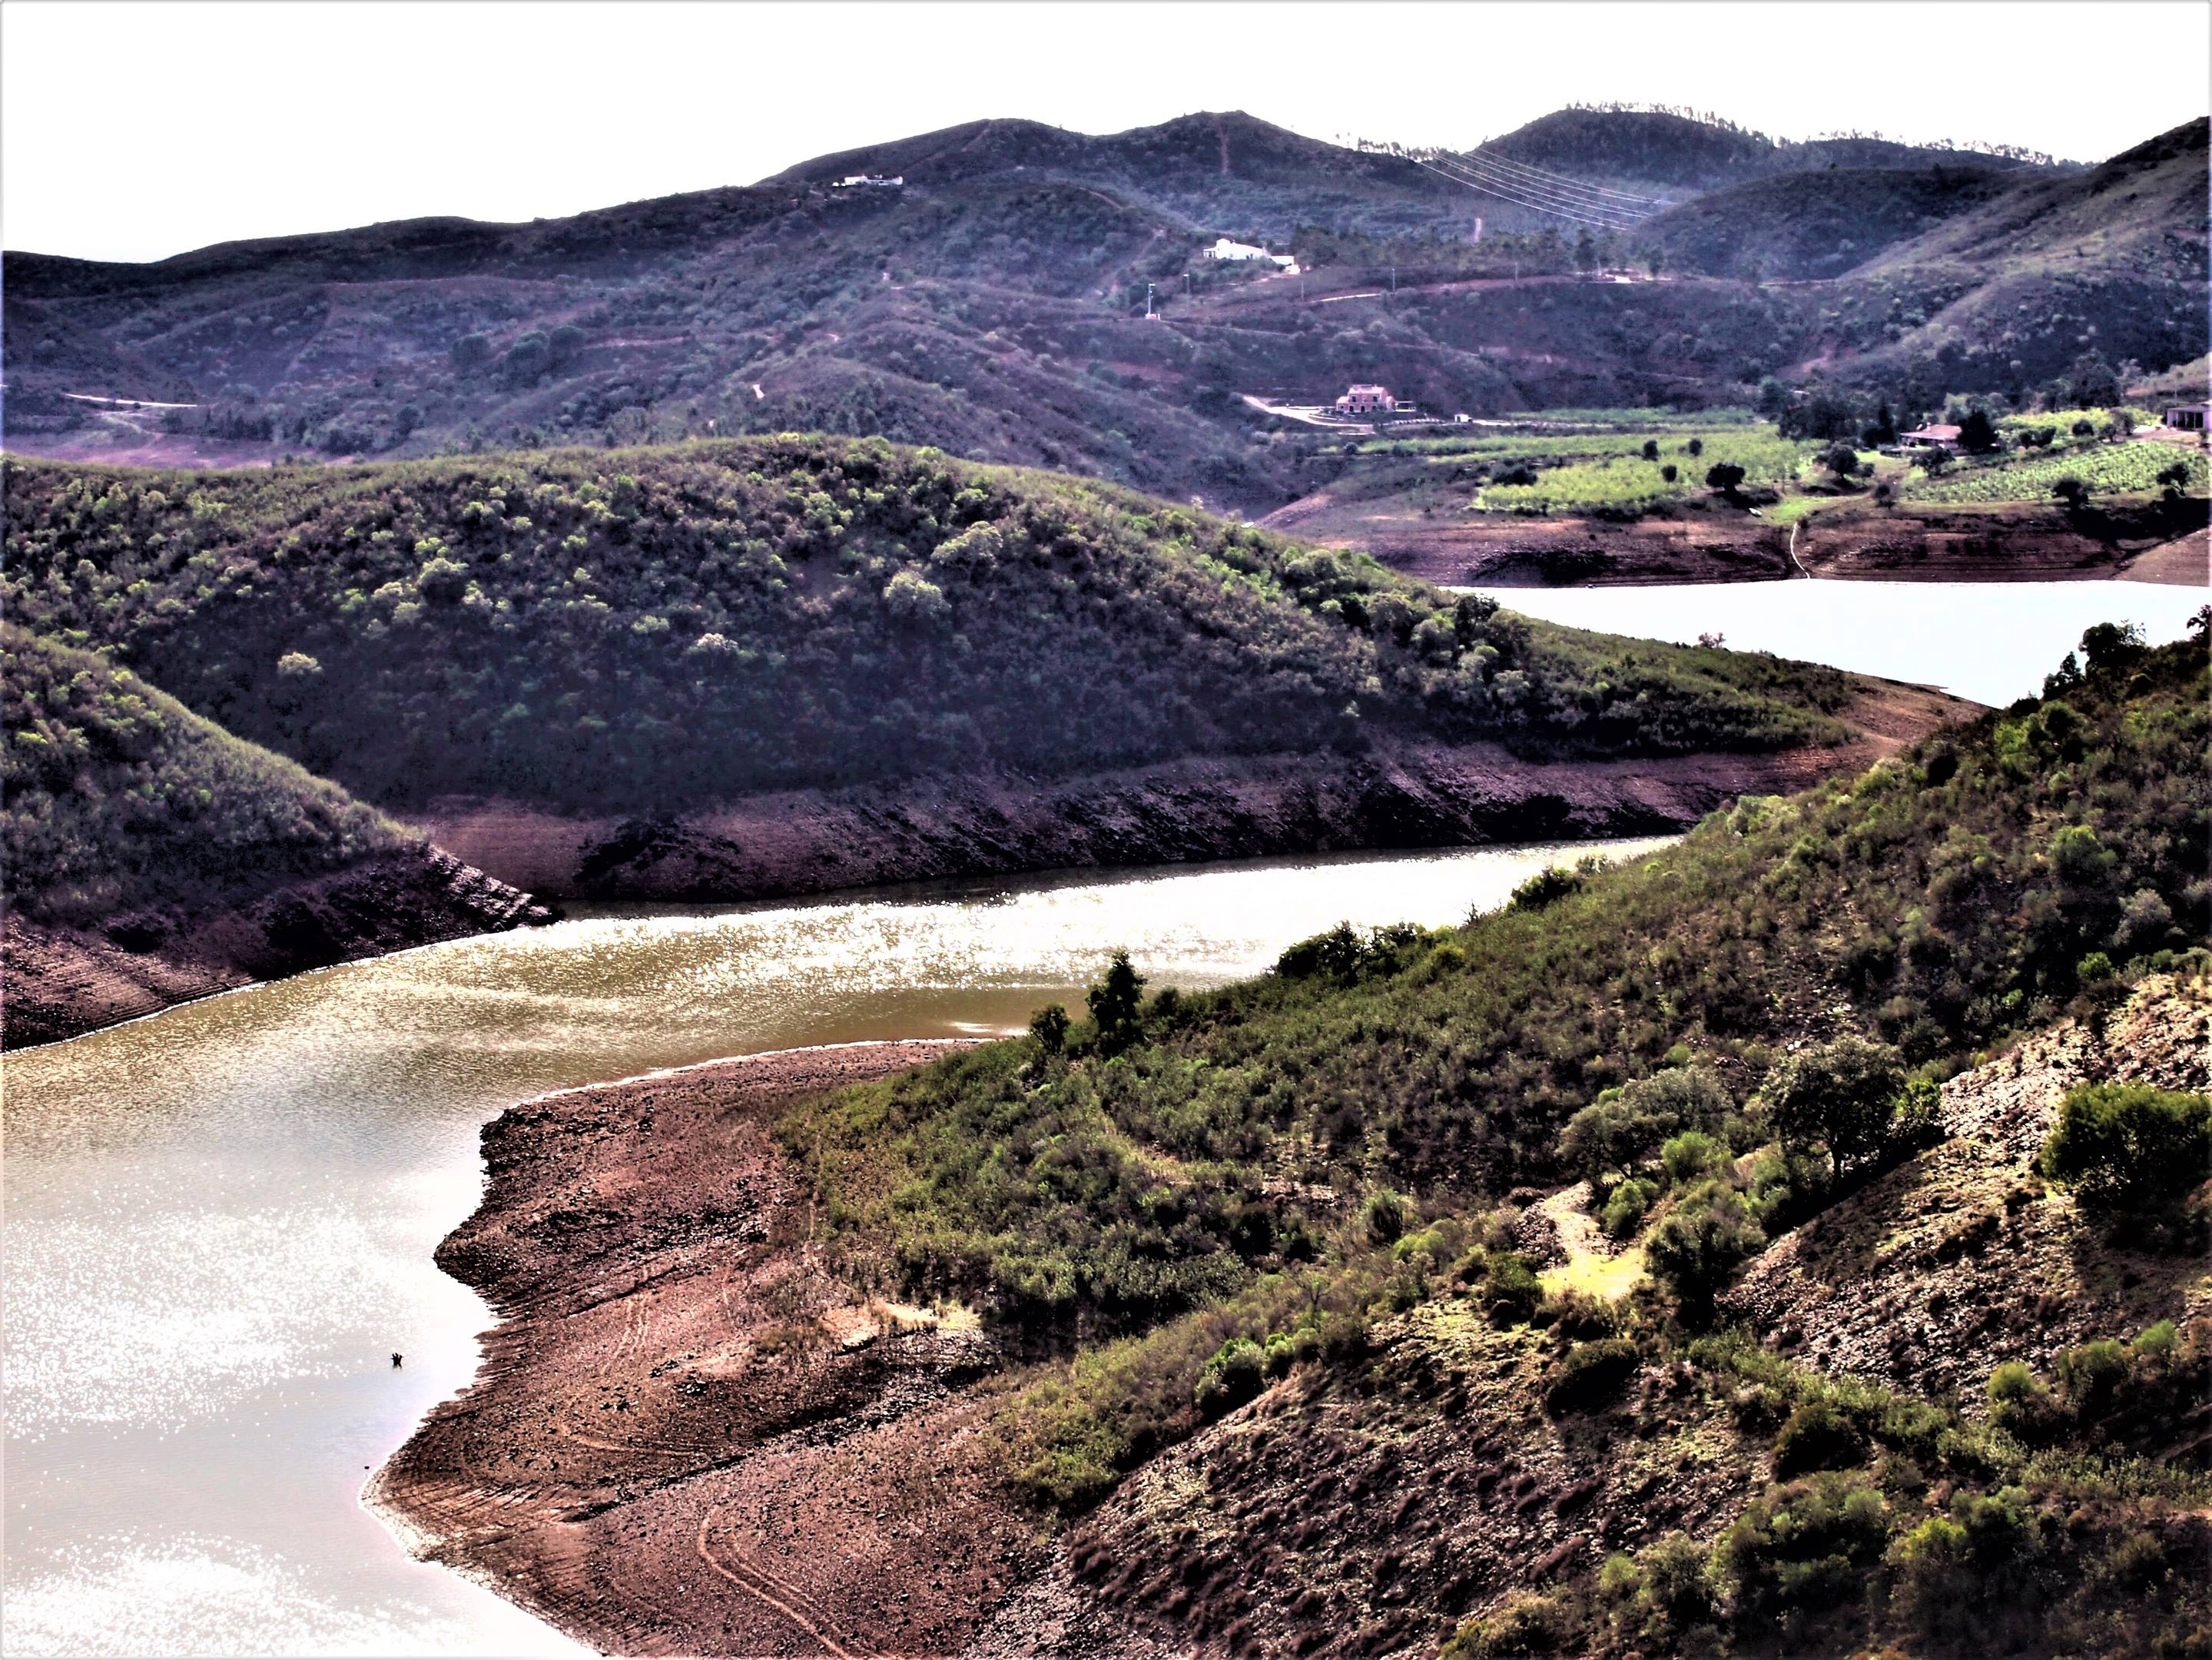 Barragem do Funcho (or Funcho Dam), near São Bartolomeu de Messines, Algarve